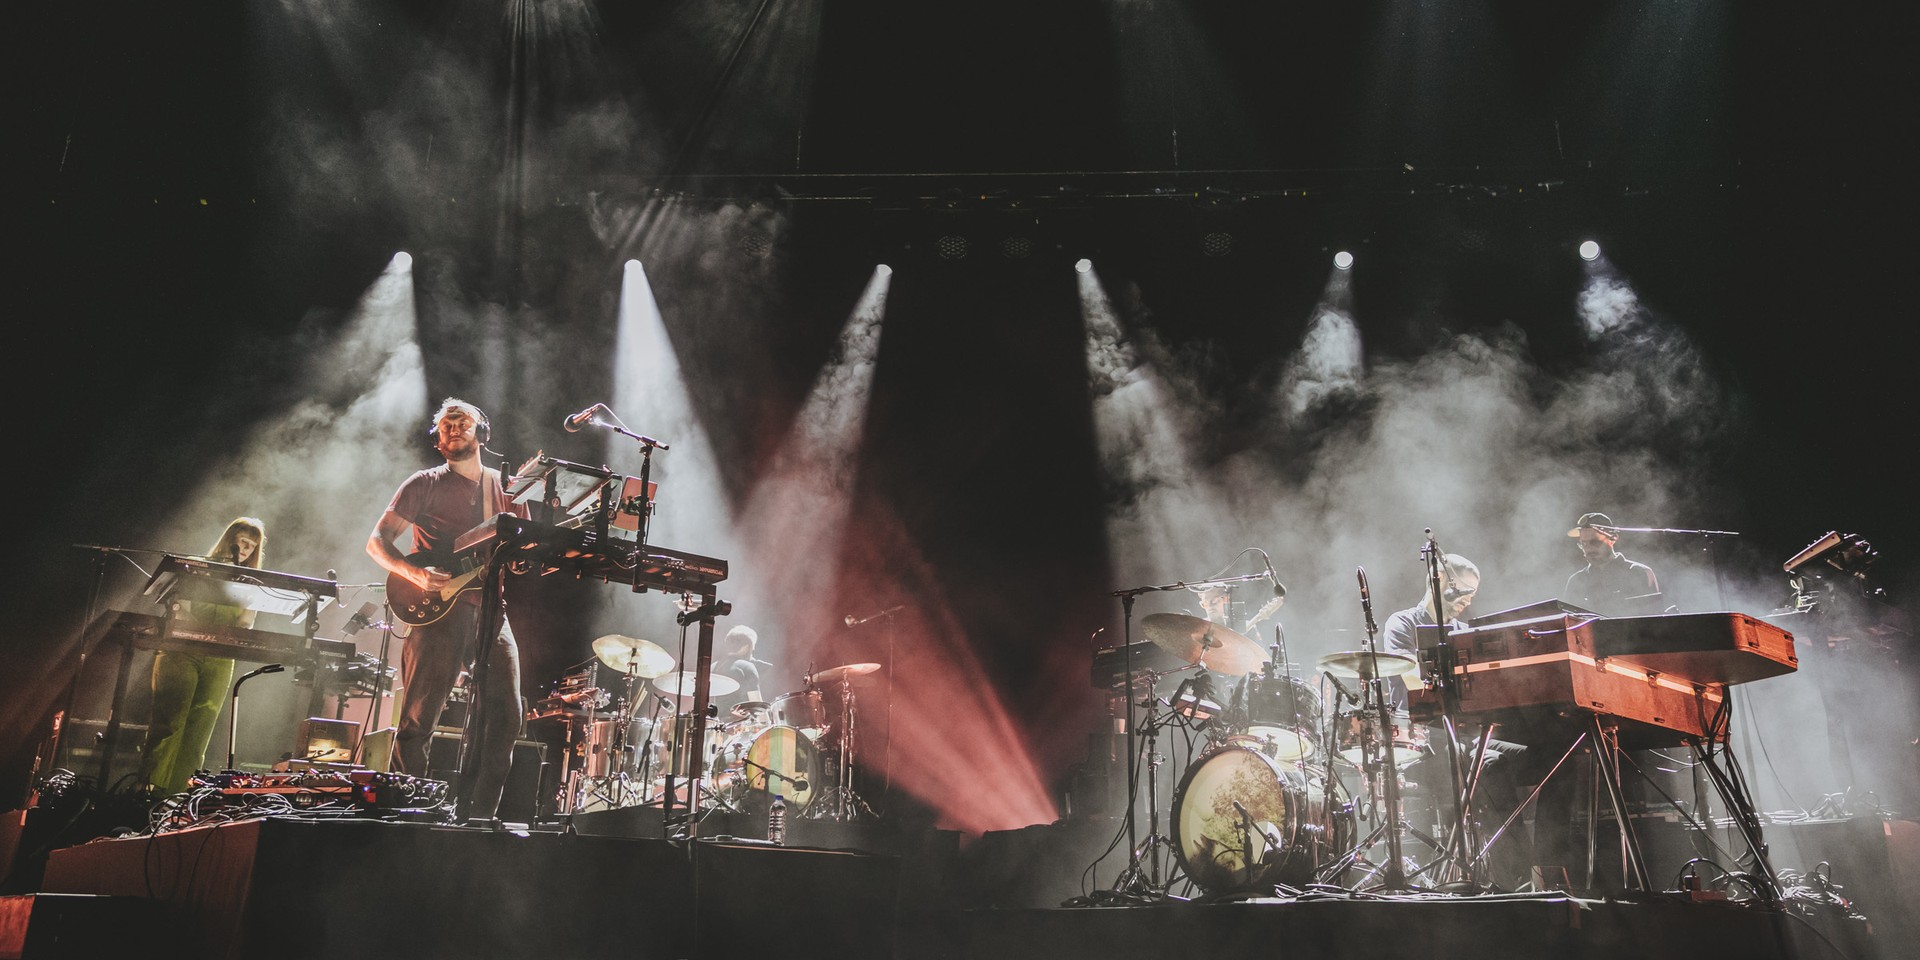 Bon Iver returns to Singapore with new songs (and a fresher approach) – Gig report